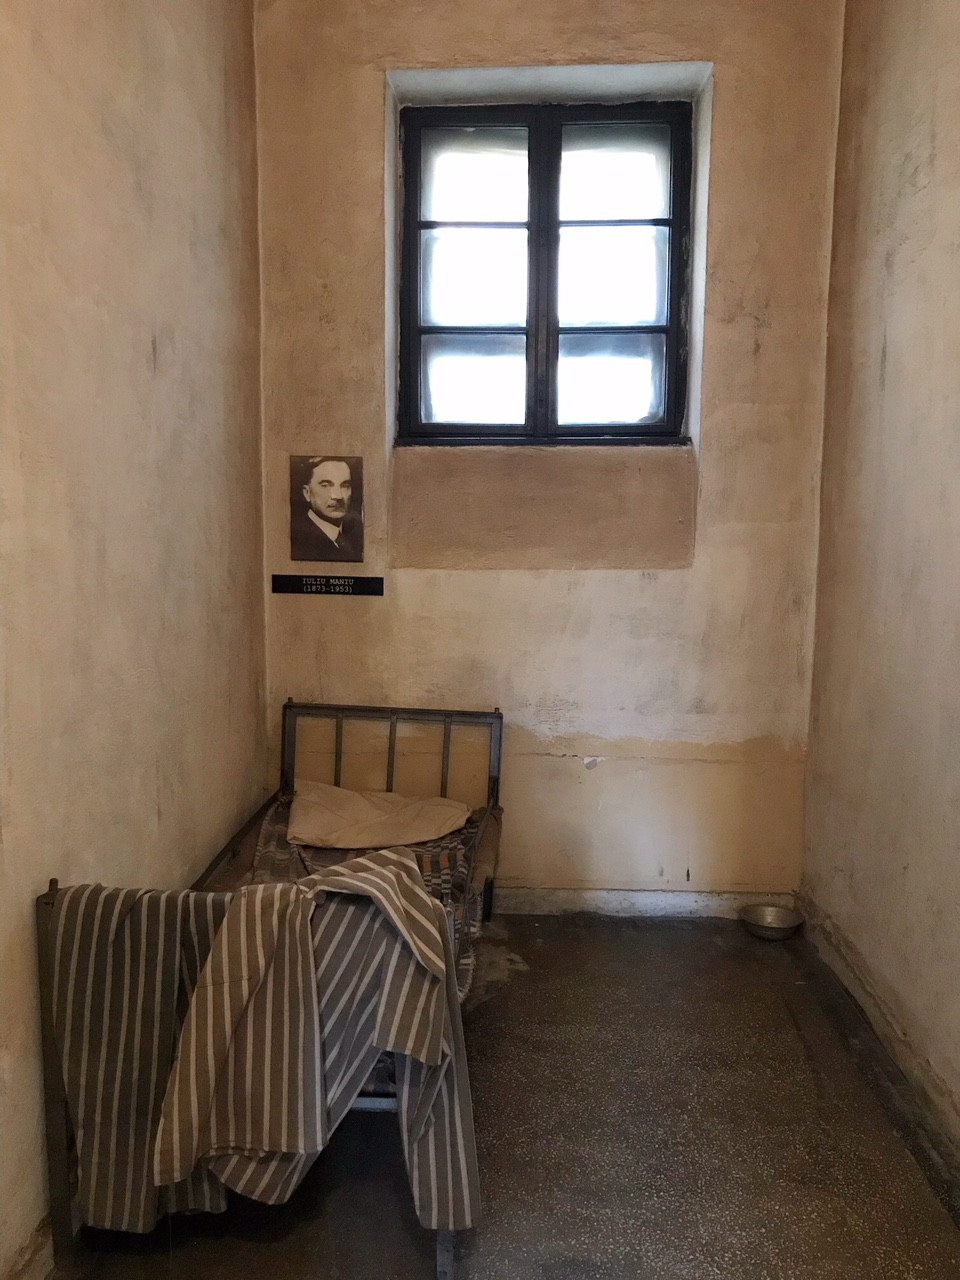 Prison cell where opposition leader Iuliu Maniu died.